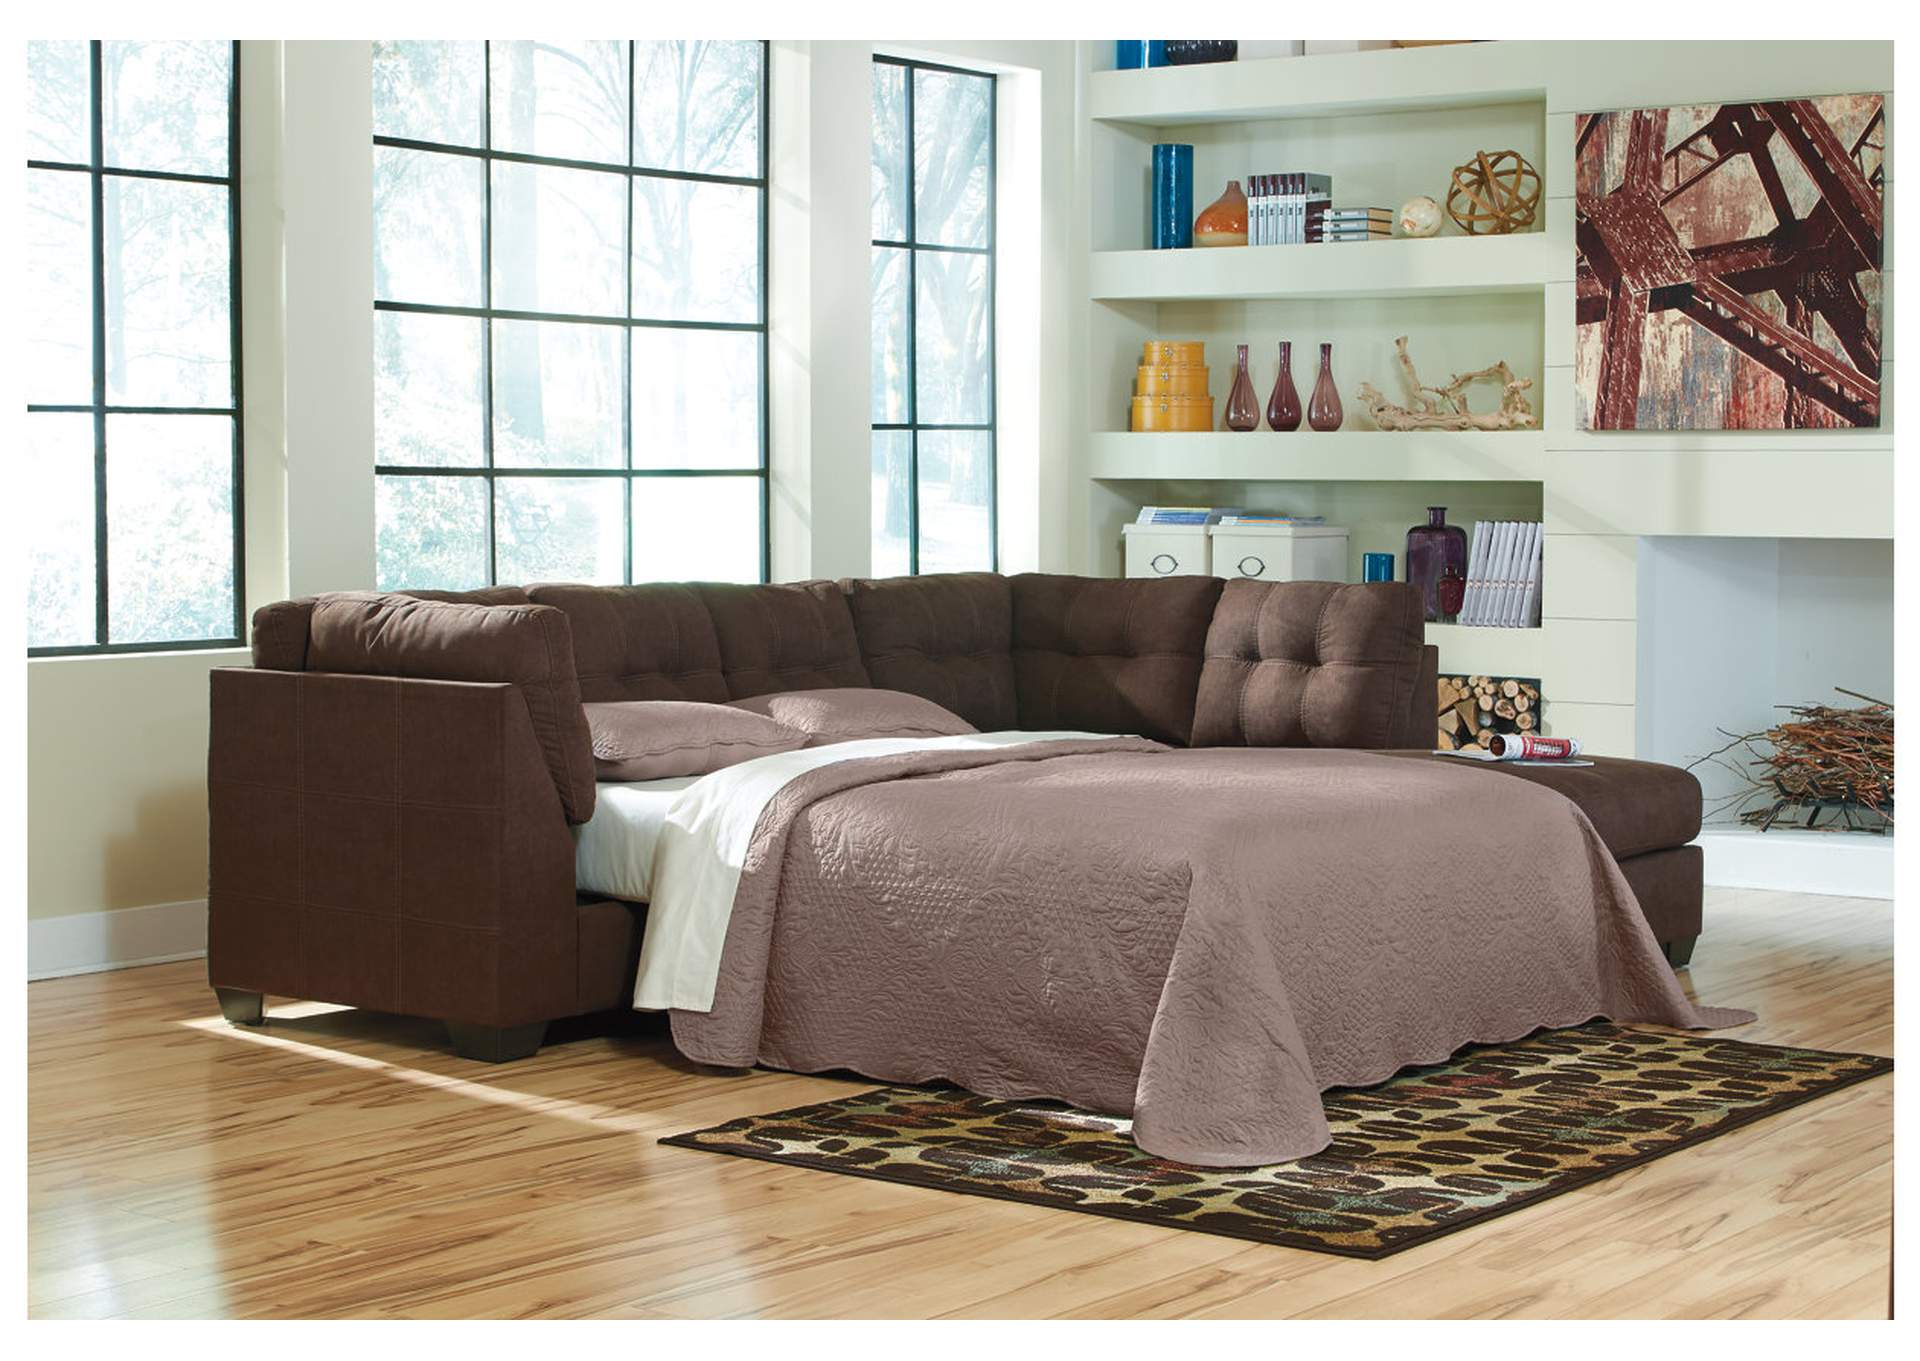 Maier Walnut Right Arm Facing Chaise End Sleeper Sectional,ABF Benchcraft